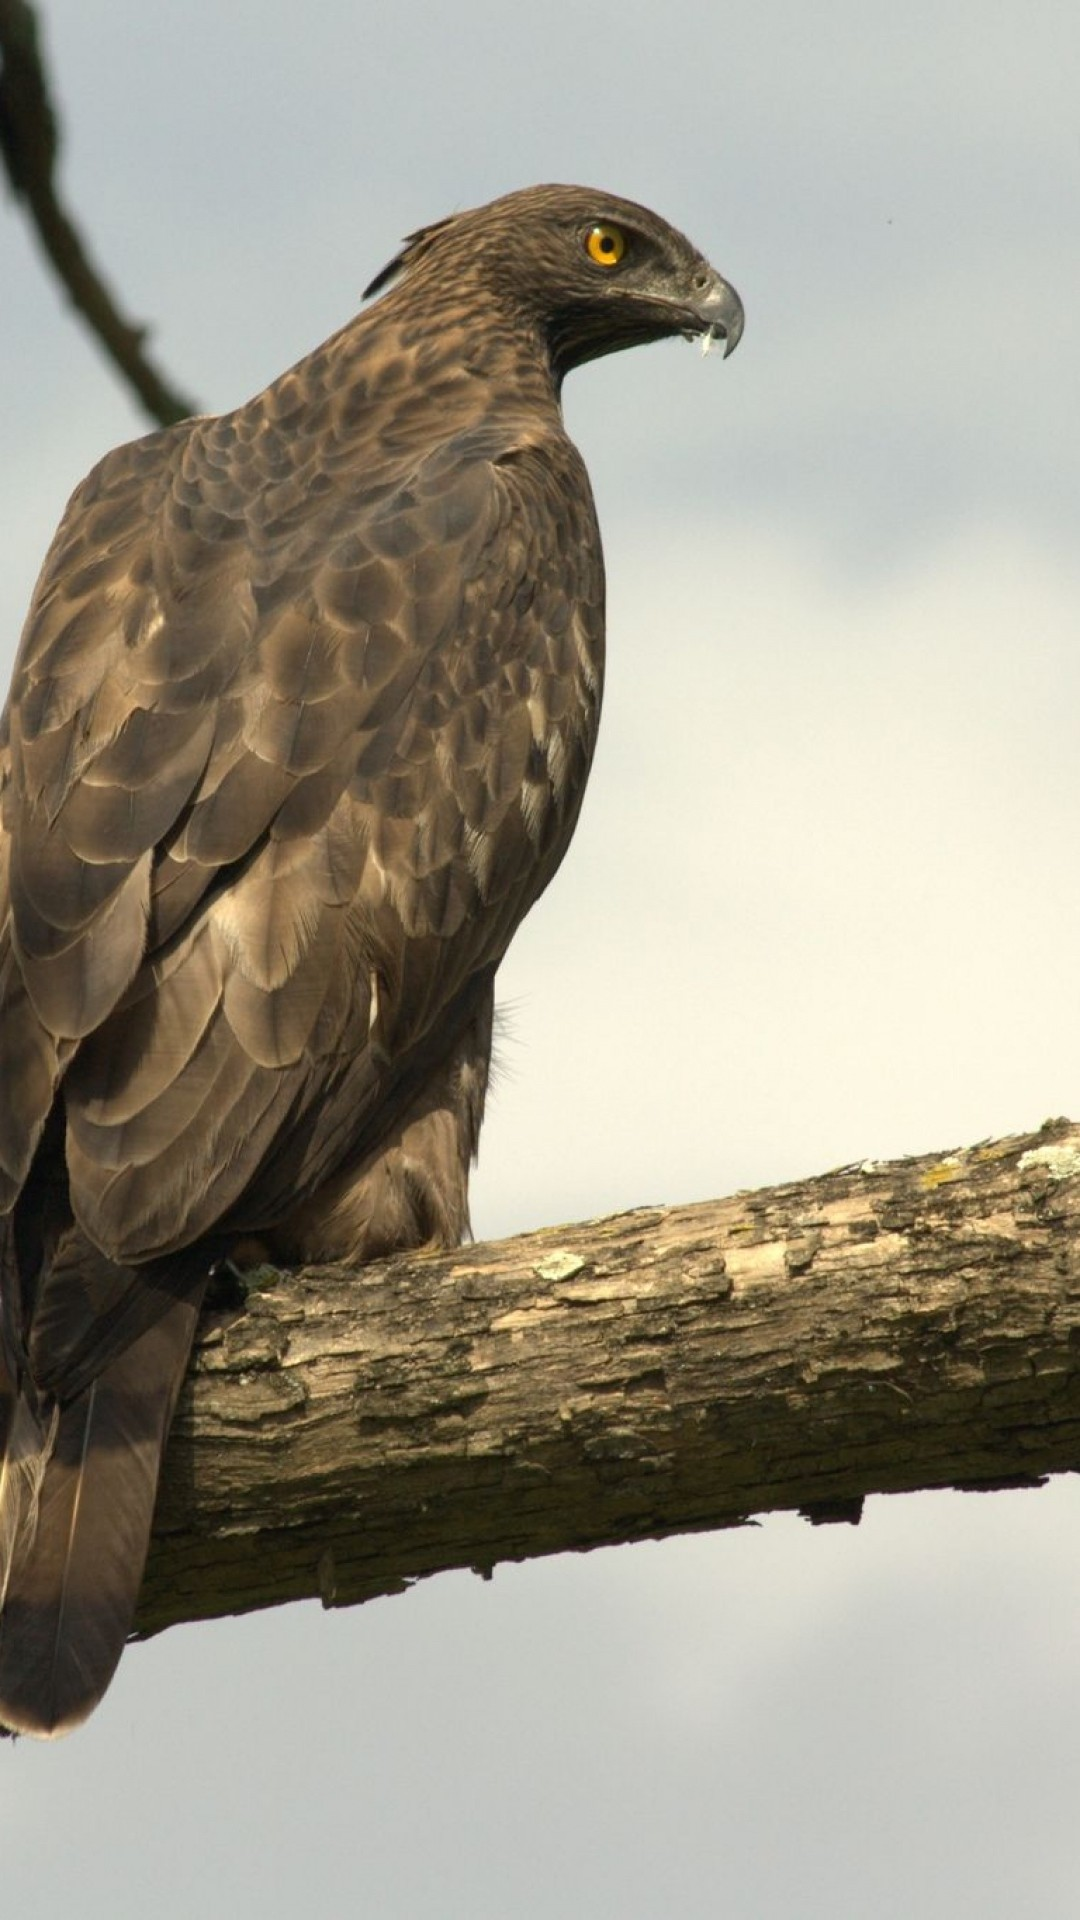 Hd hawk wallpaper 65 images - Hawk iphone wallpaper ...